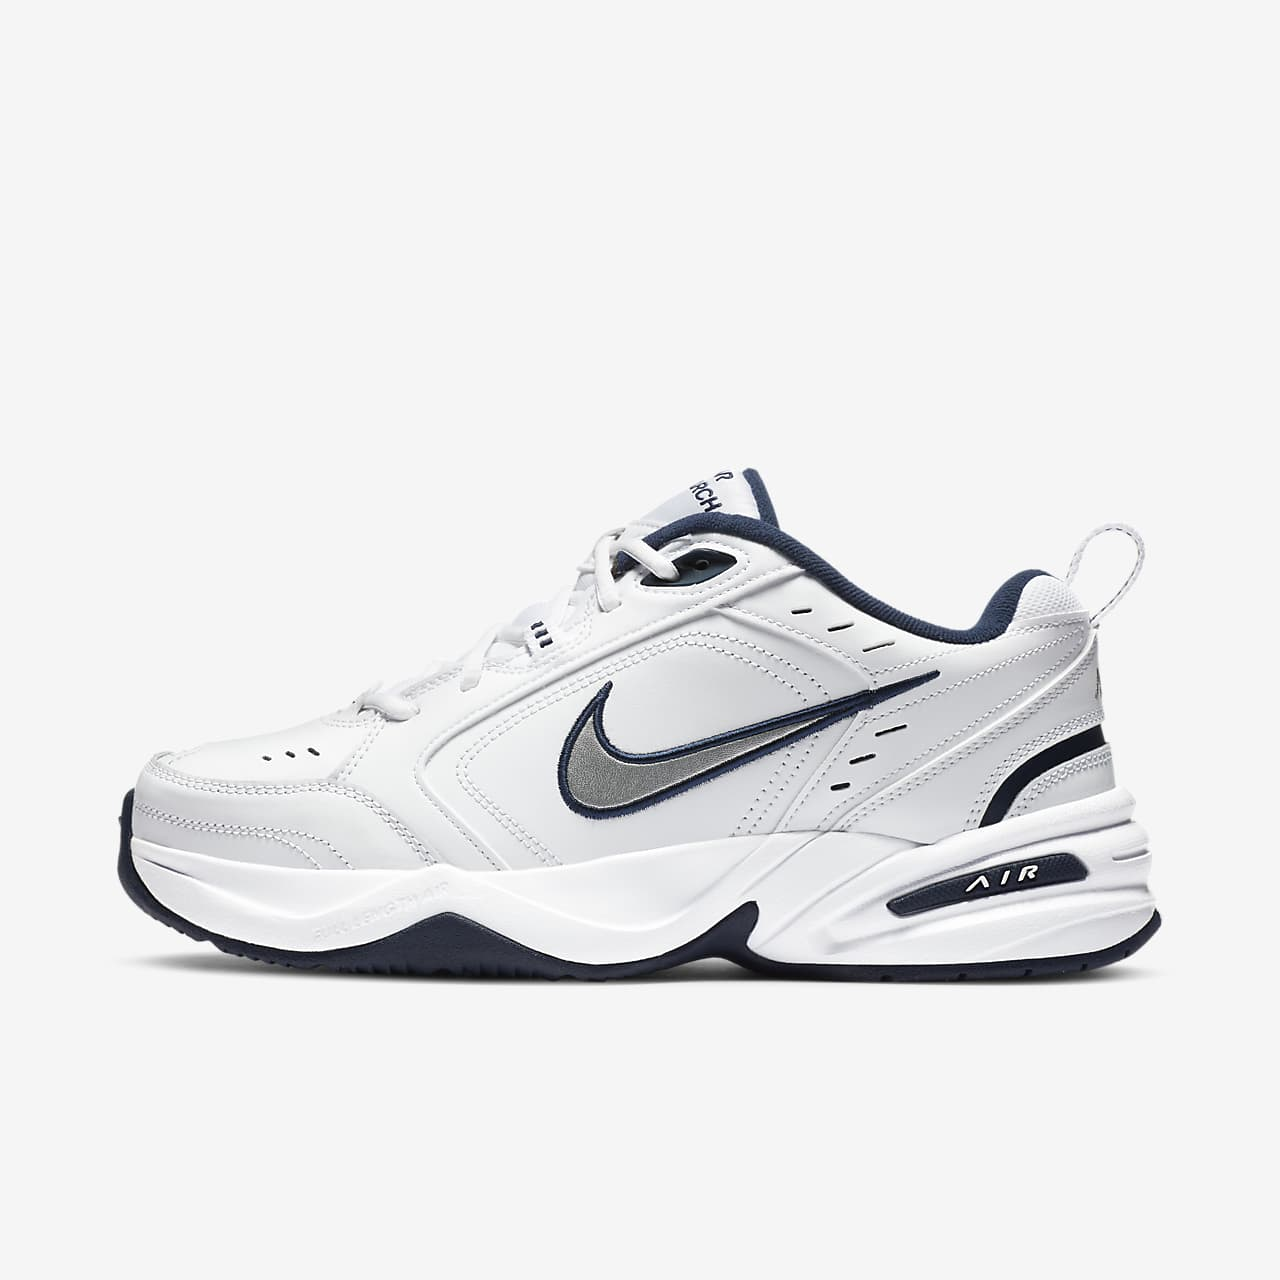 pretty nice 127ca 290e1 ... Chaussure de fitness et lifestyle Nike Air Monarch IV